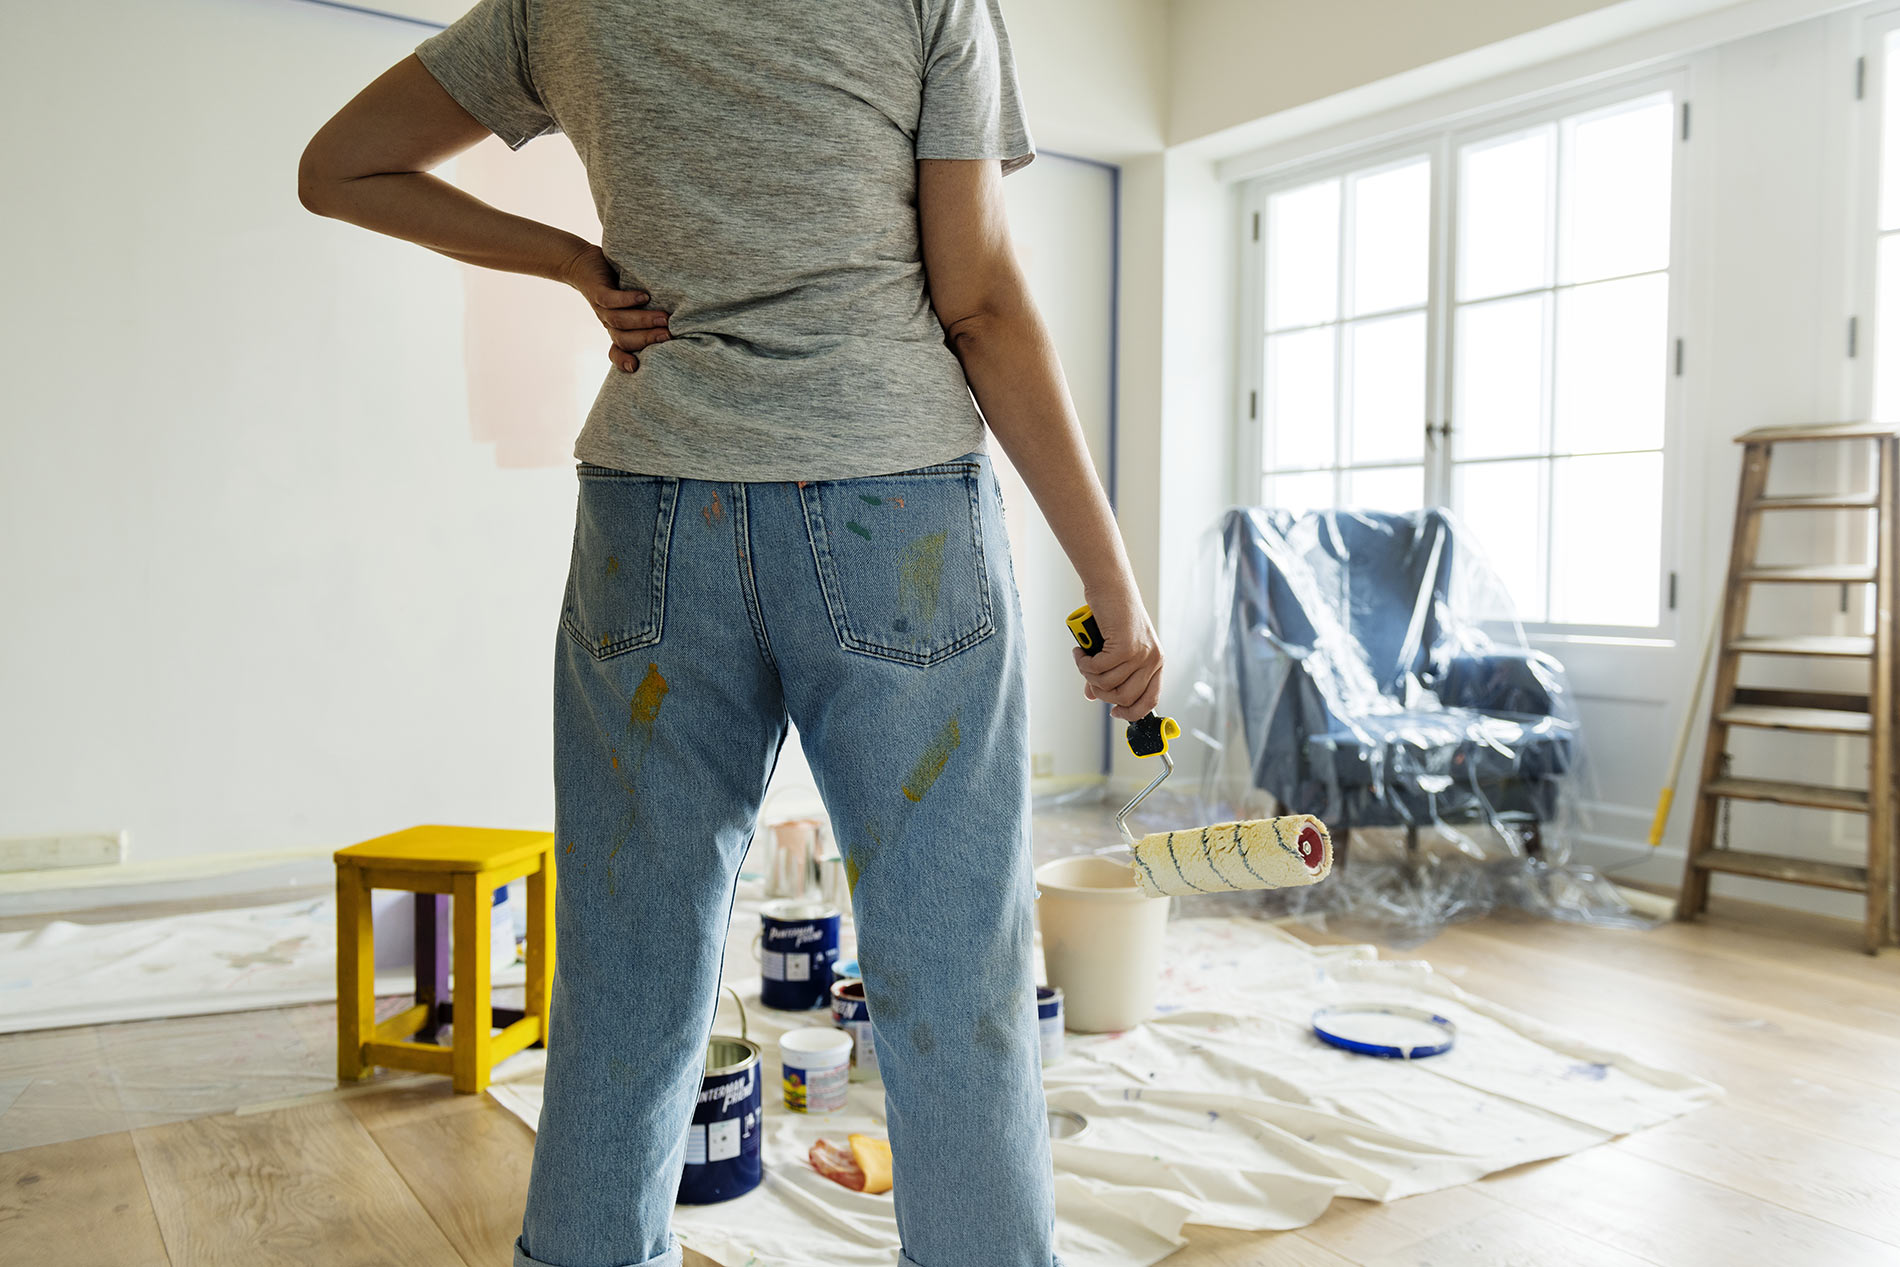 Joyce Van Patten's Advice: 6 Easy home improvements under $100